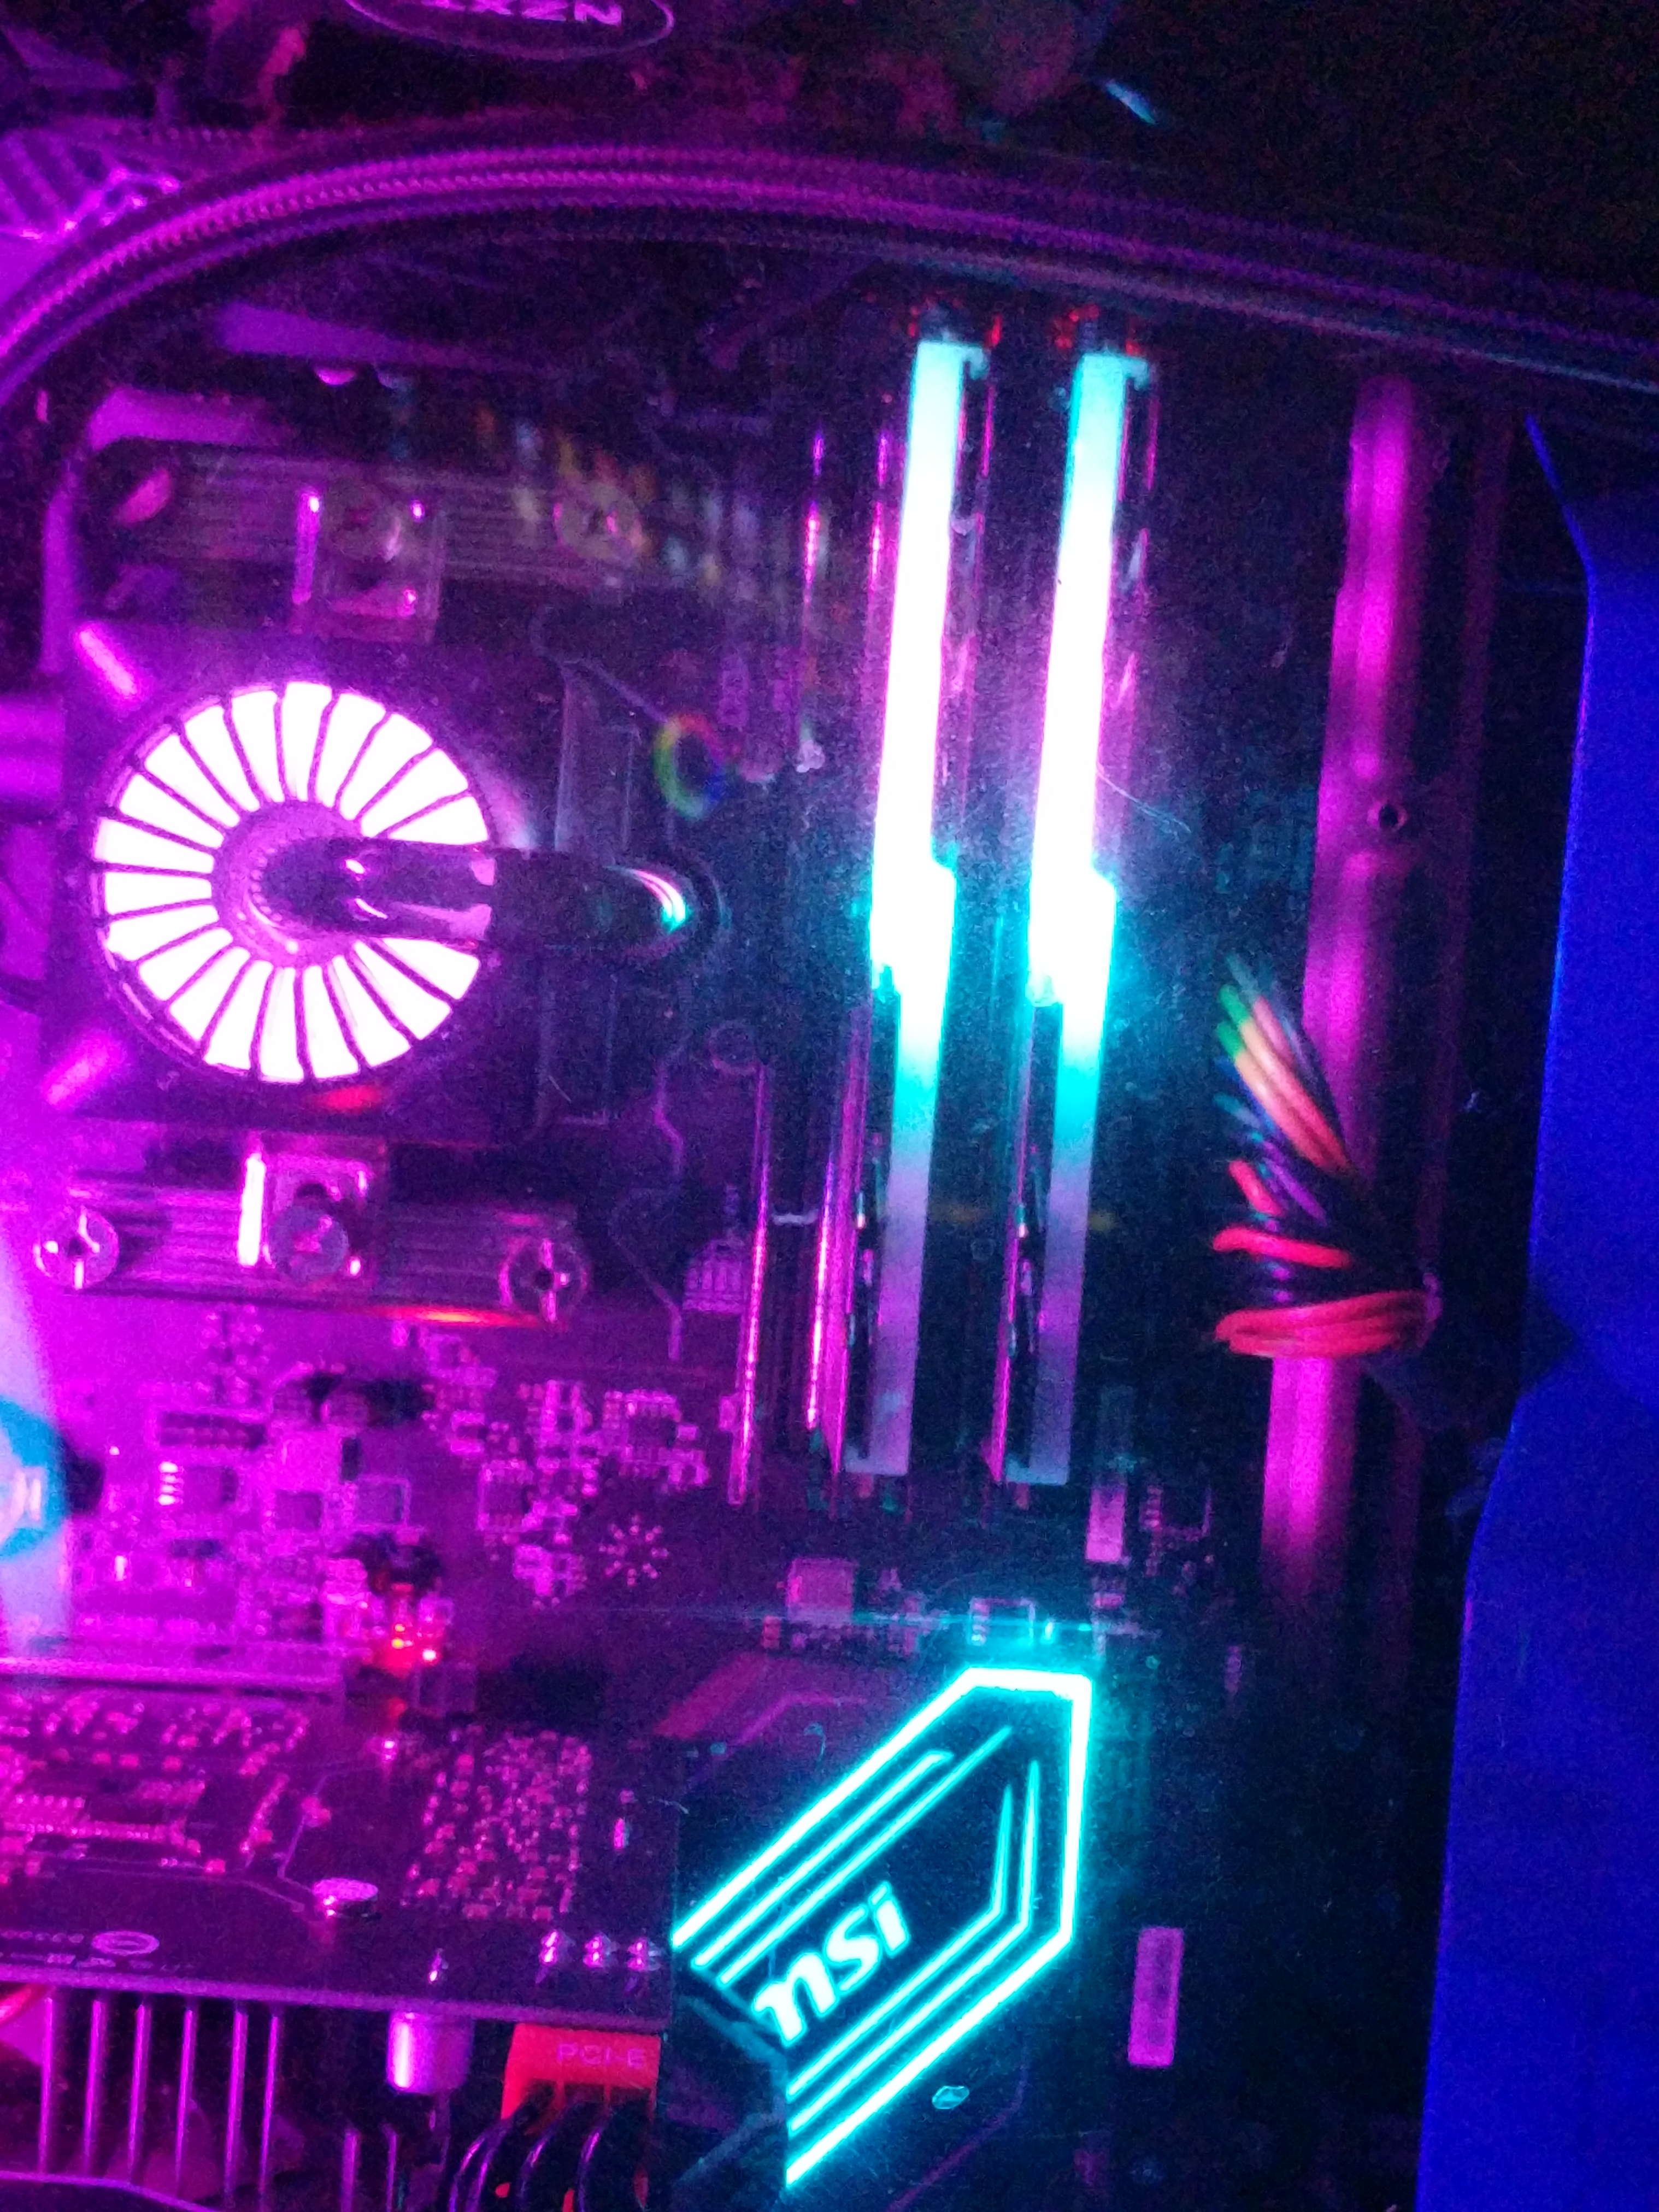 TRIDENT Z RGB LIGHTING - CPUs, Motherboards, and Memory